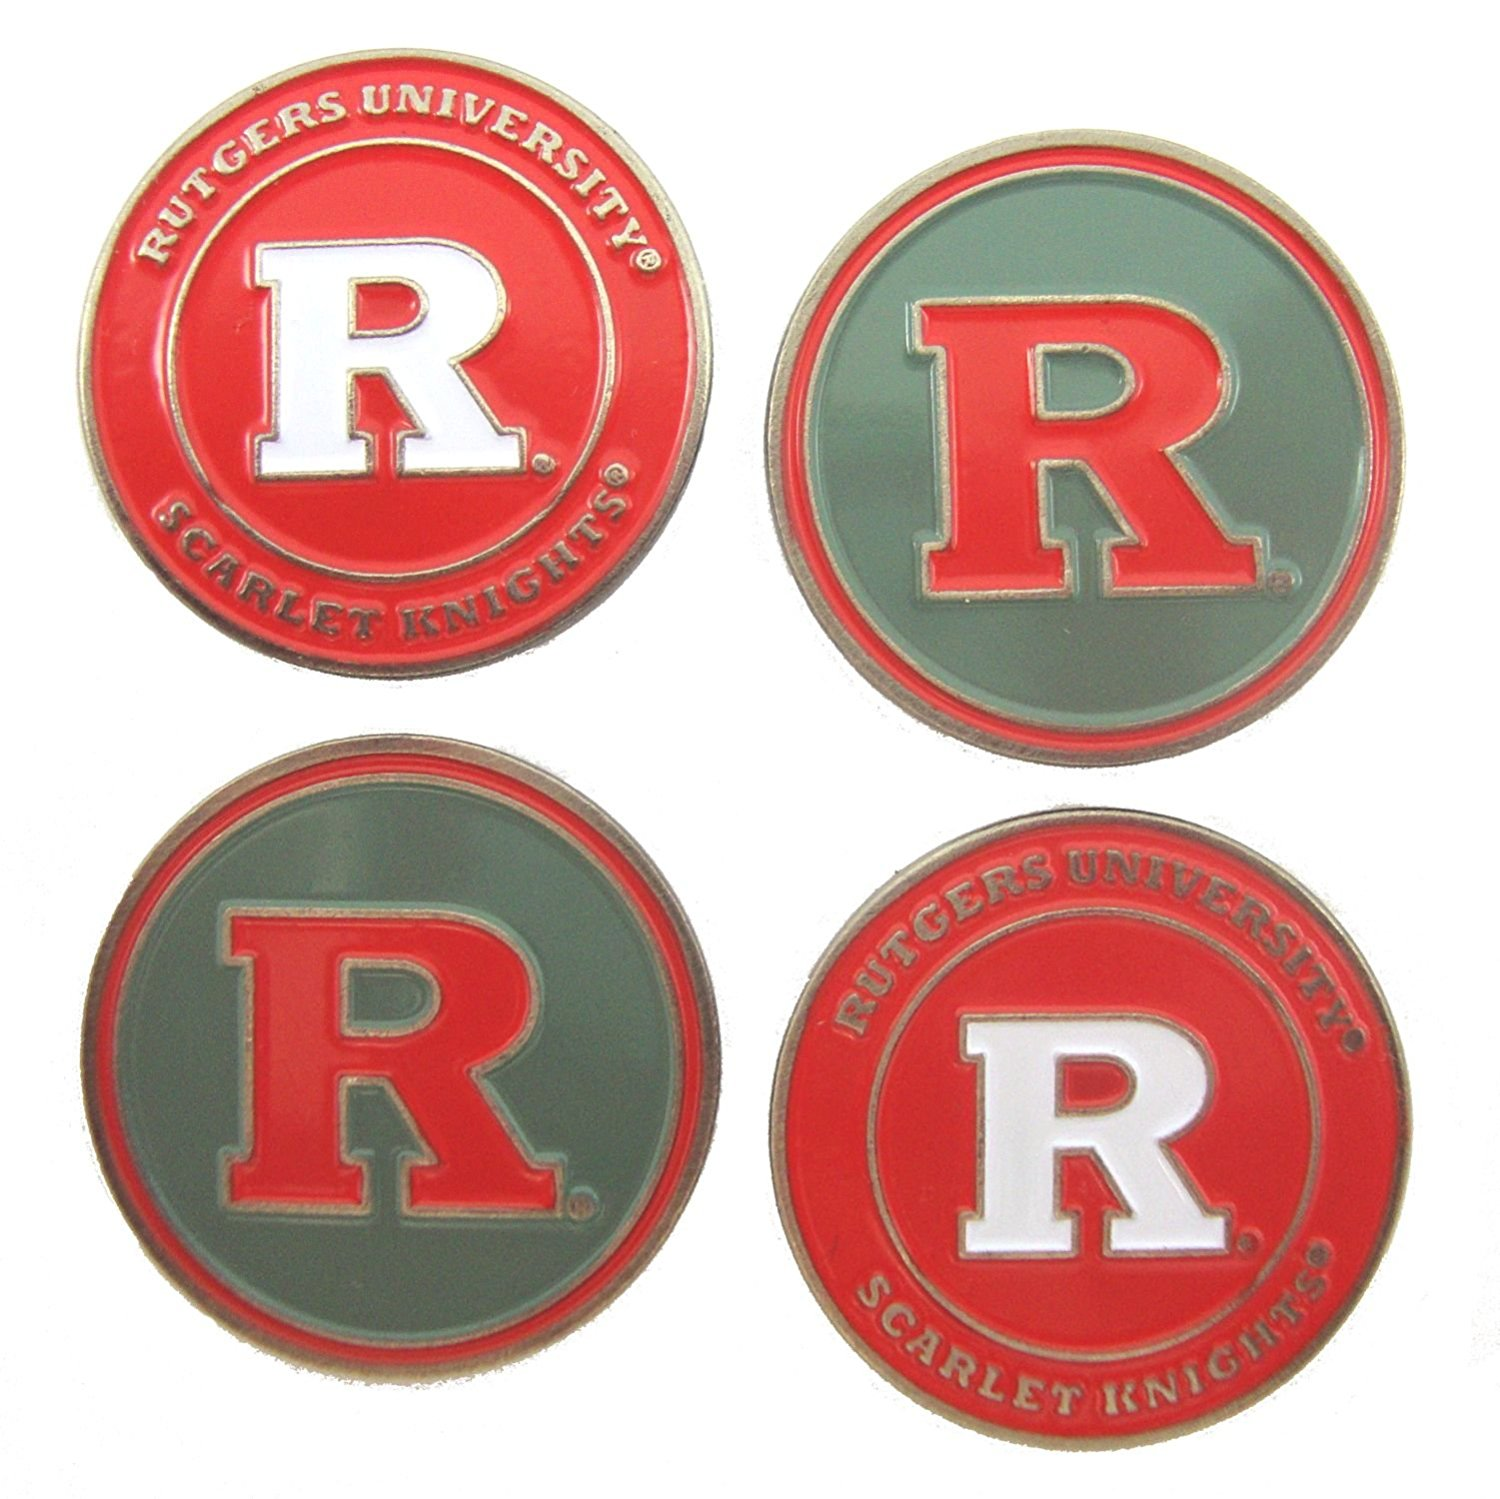 Rutgers Scarlet Knights Double Sided Golf Ball Markers (Set of 4), Rutgers University Golf Ball Markers By Waggle Pro Shop,USA